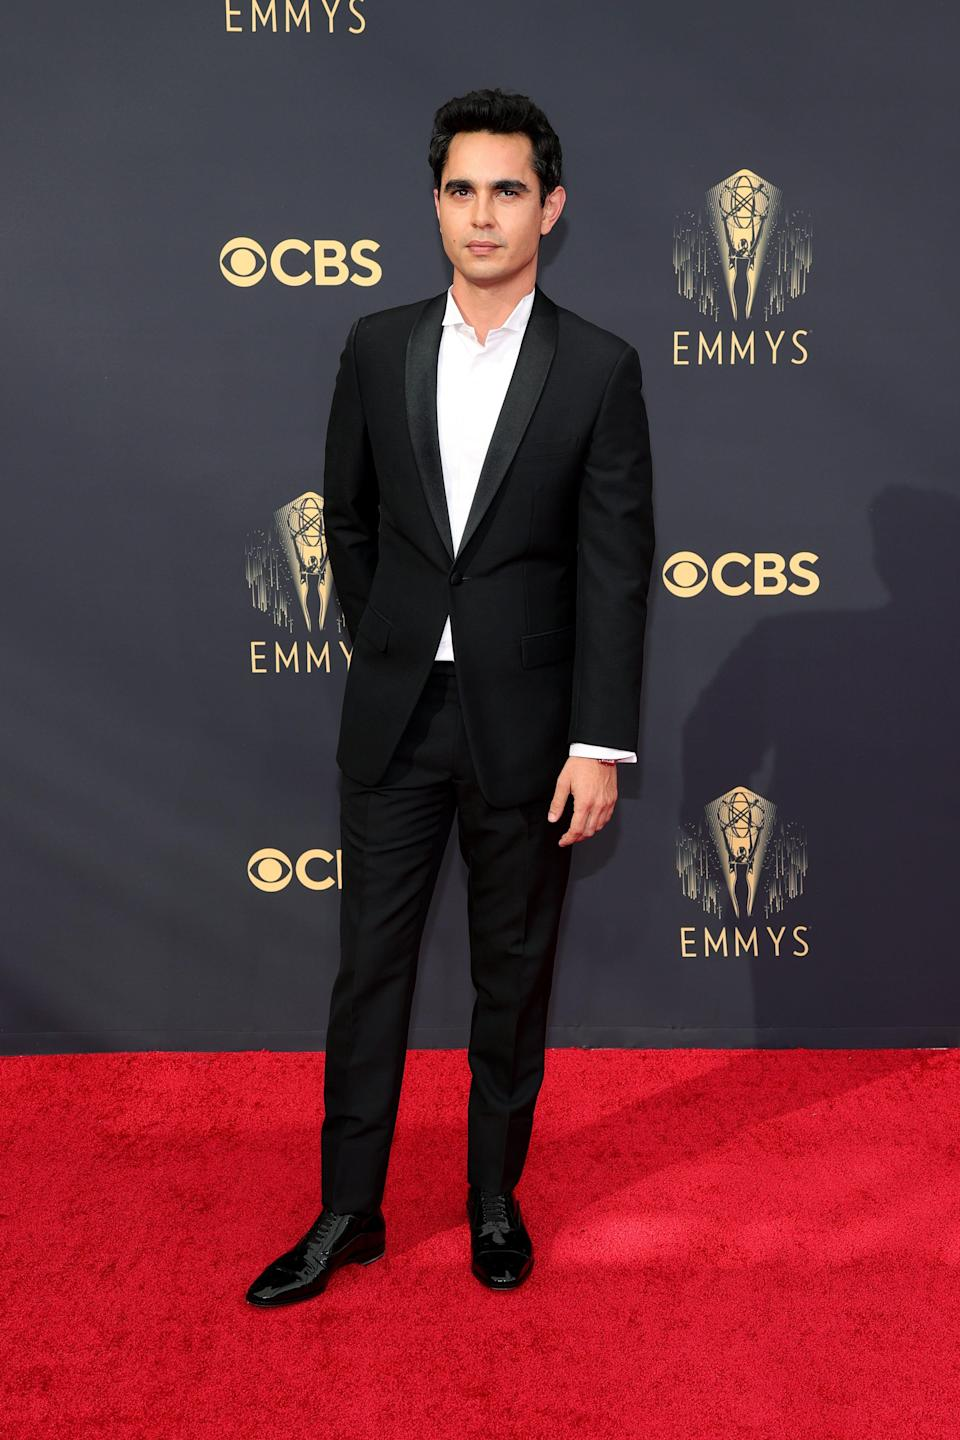 Max Minghella attends the 2021 Emmys.